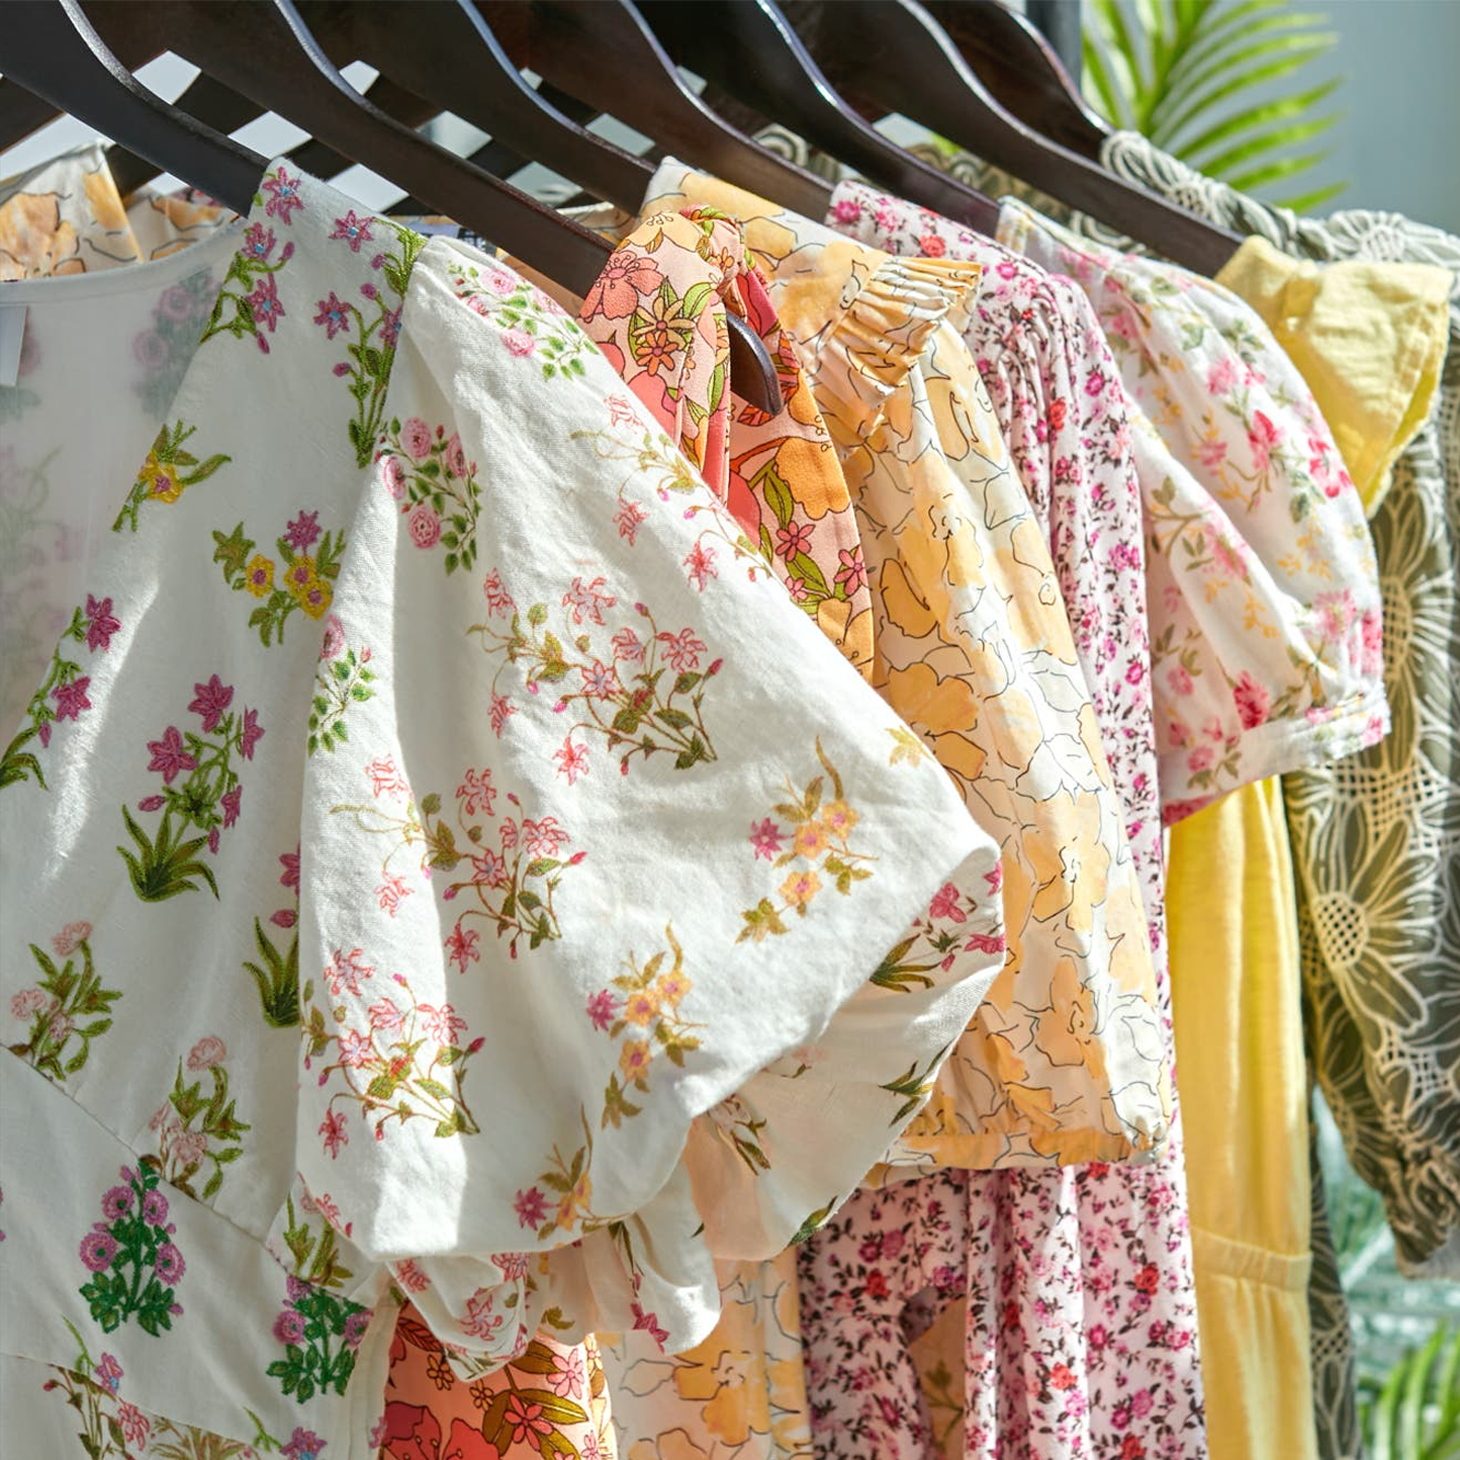 Rent the Runway and TripAdvisor Deliver Designer Clothing to Hotels in New Partnership